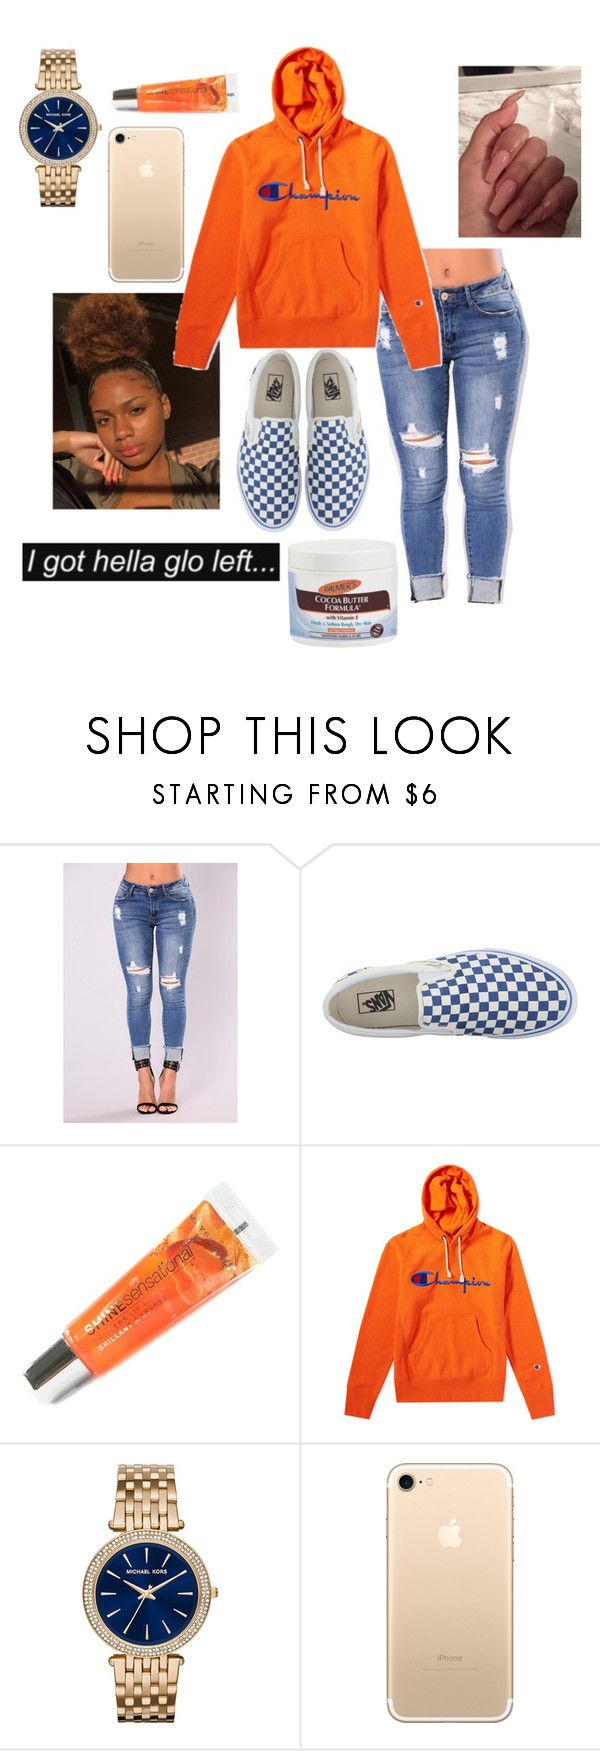 """glow✨"" by wavvyyyzarie ❤ liked on Polyvore featuring Vans, Maybelline, Champion, Michael Kors and Palmer's"